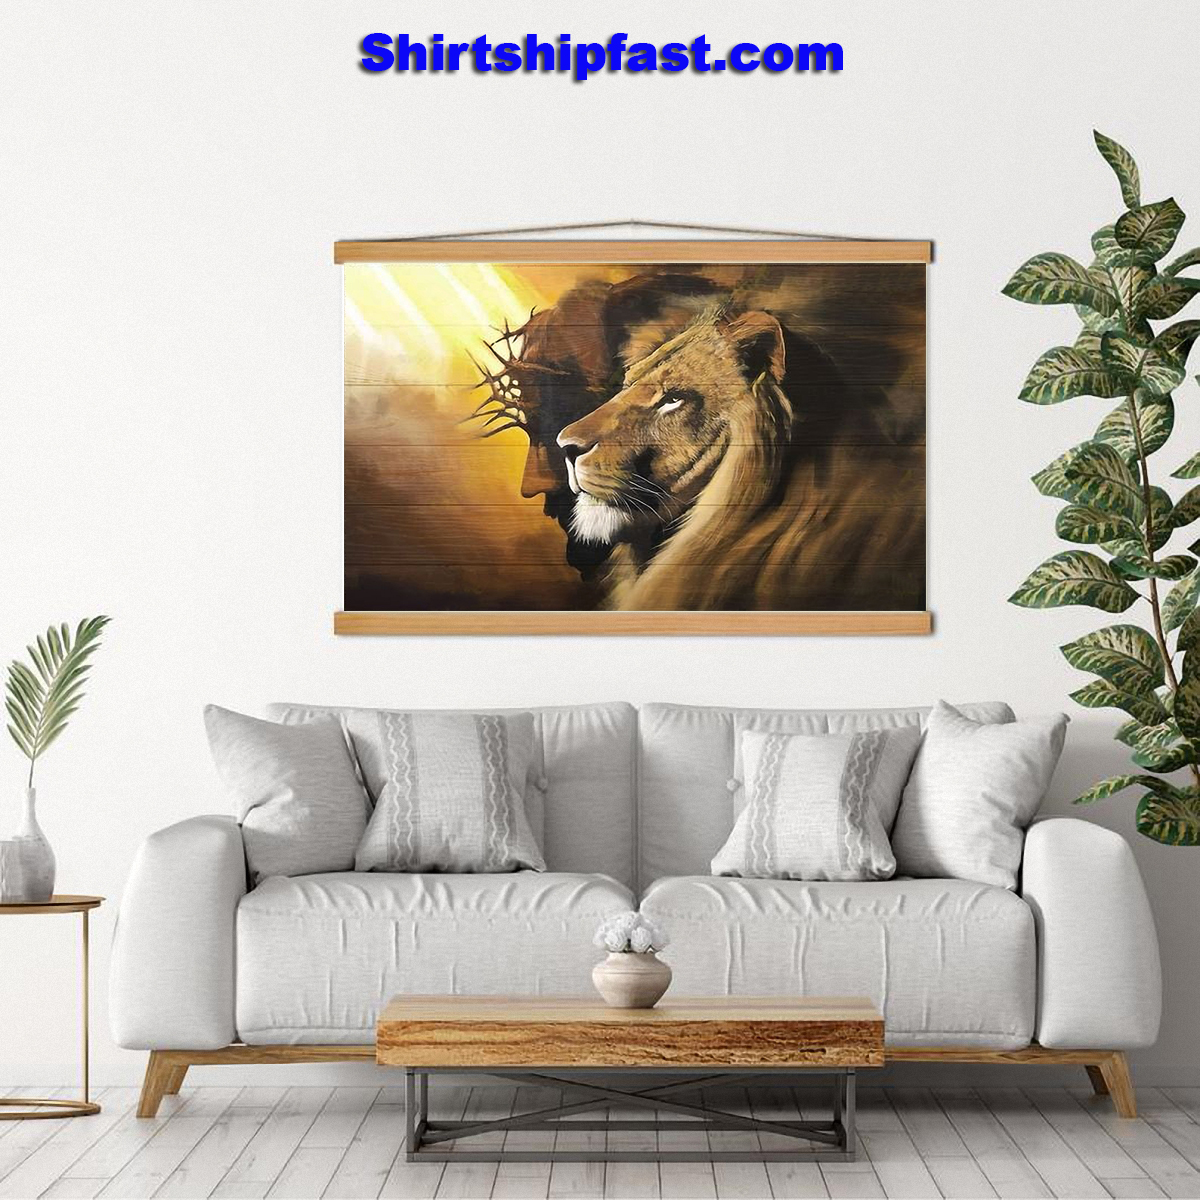 Awesome lion and god canvas prints